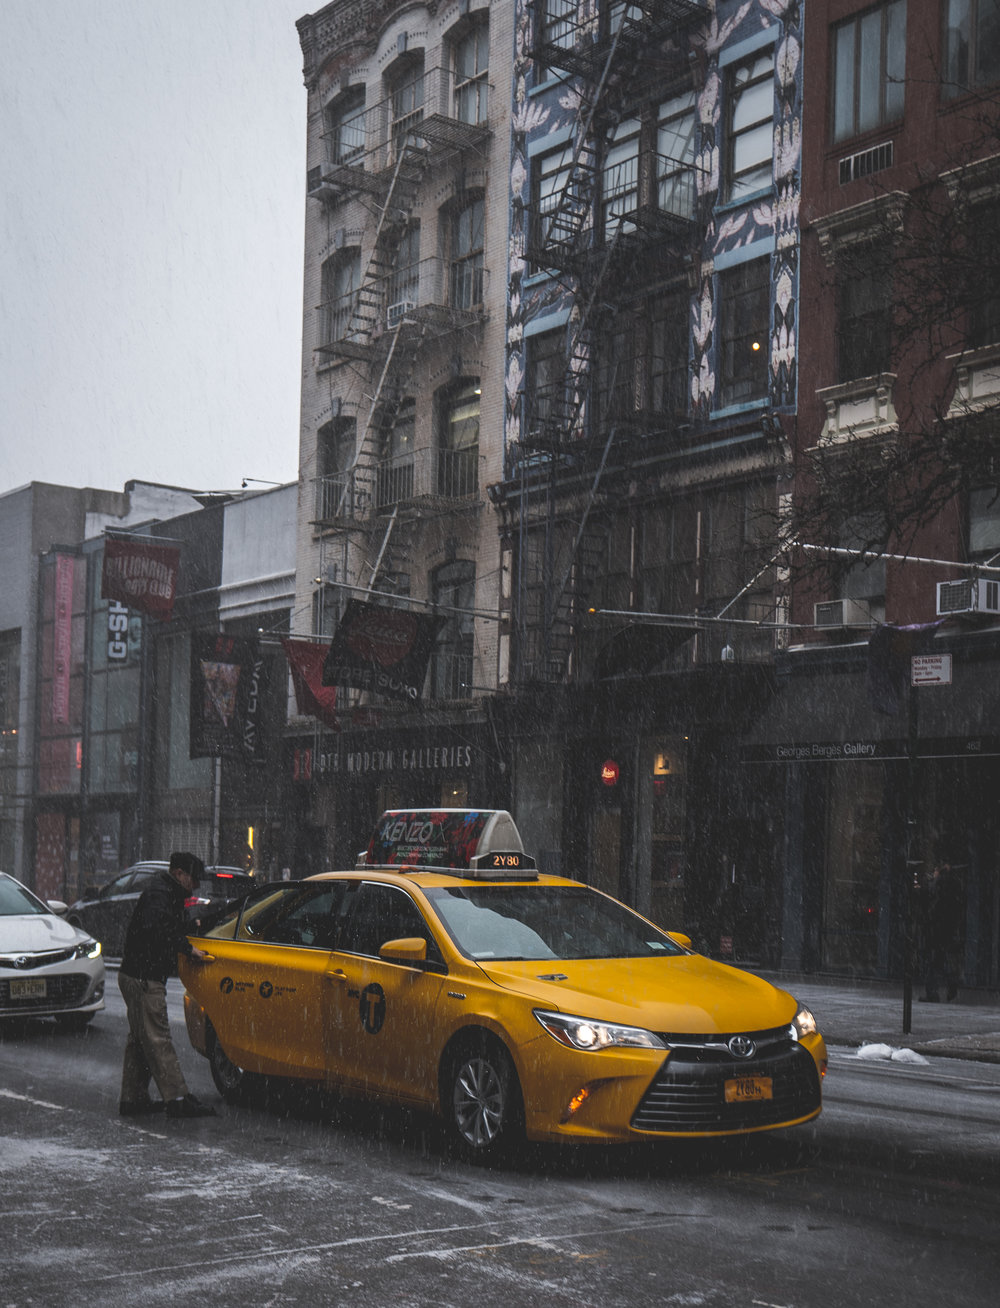 """A classic """"New York"""" photo of man getting into yellow cab. Love the pop of yellow from the cab in this otherwise desaturated dark toned photo."""